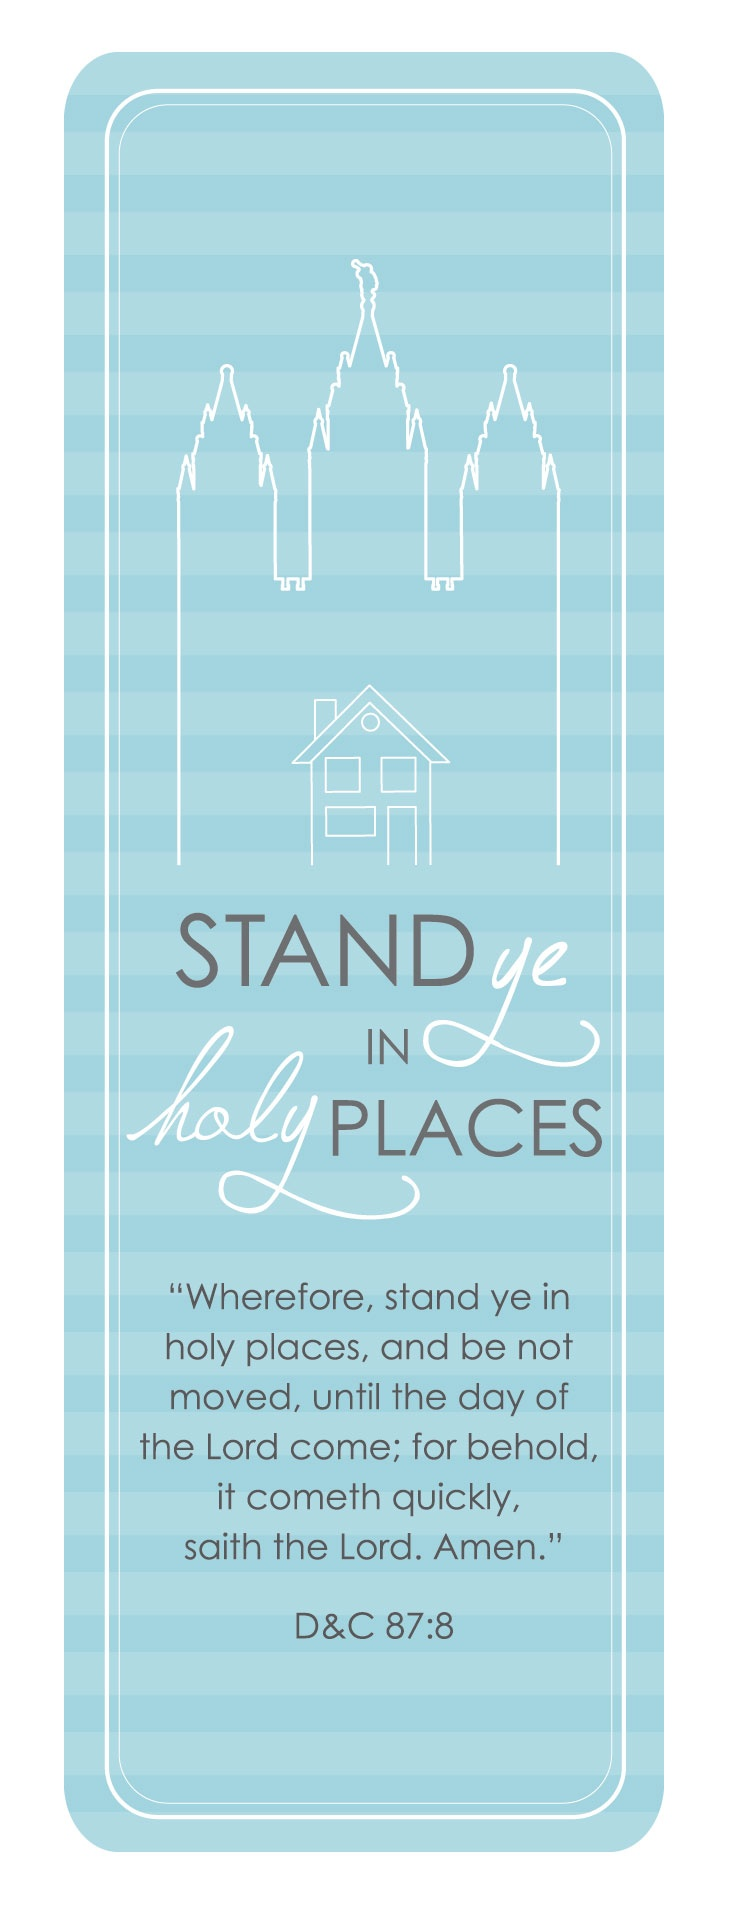 113 best images about church on Pinterest   Scripture journal, Book of ...